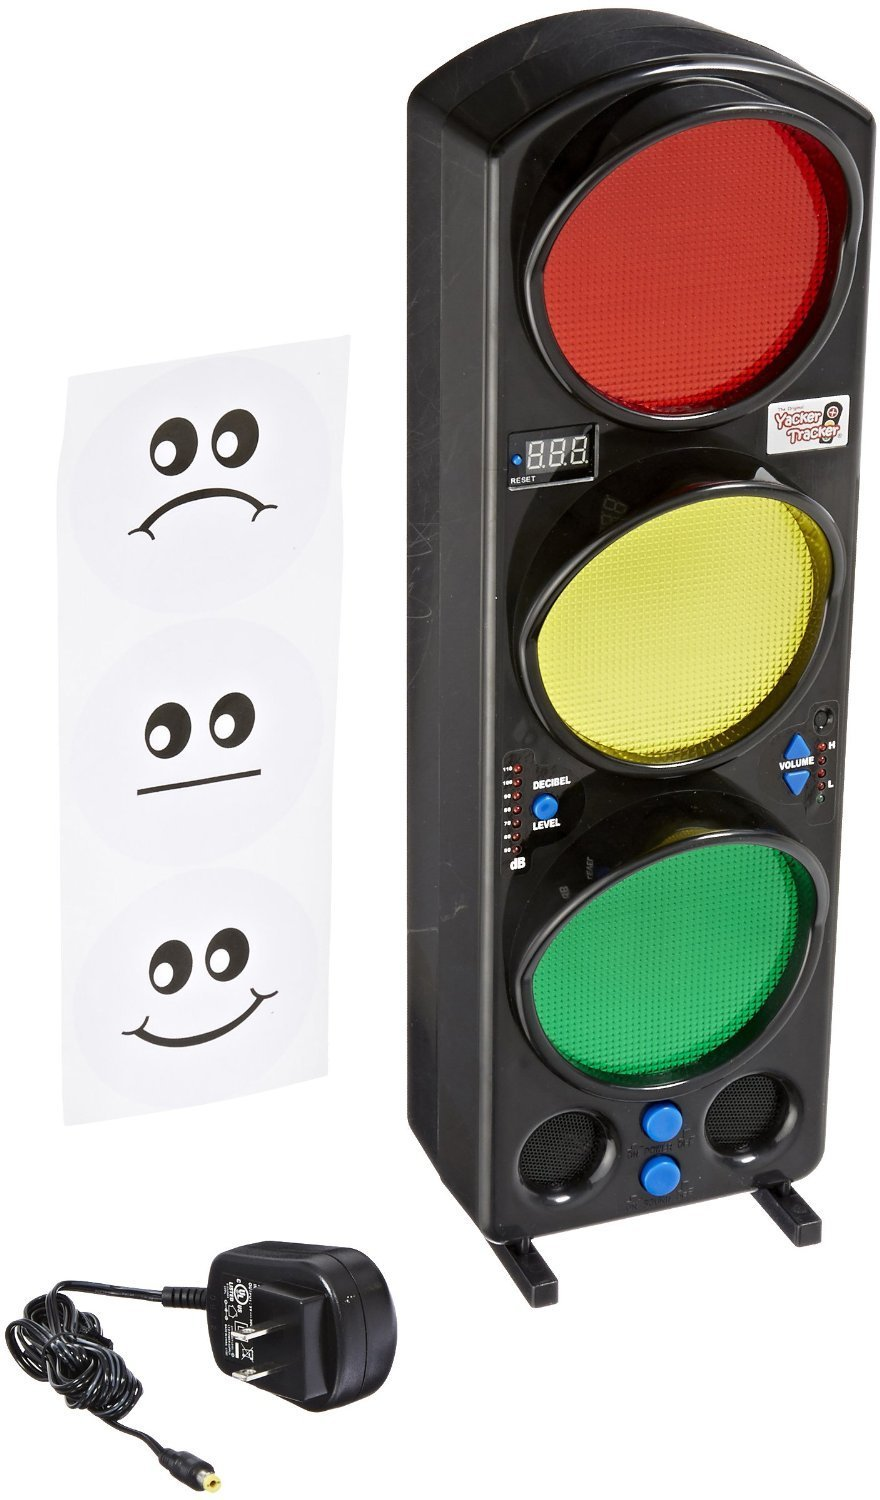 Yacker Tracker Noise Level Monitor Detector - Visual LED Traffic Signal Light - Great for Schools, Classrooms, Cafeterias, Hospitals and More - 17